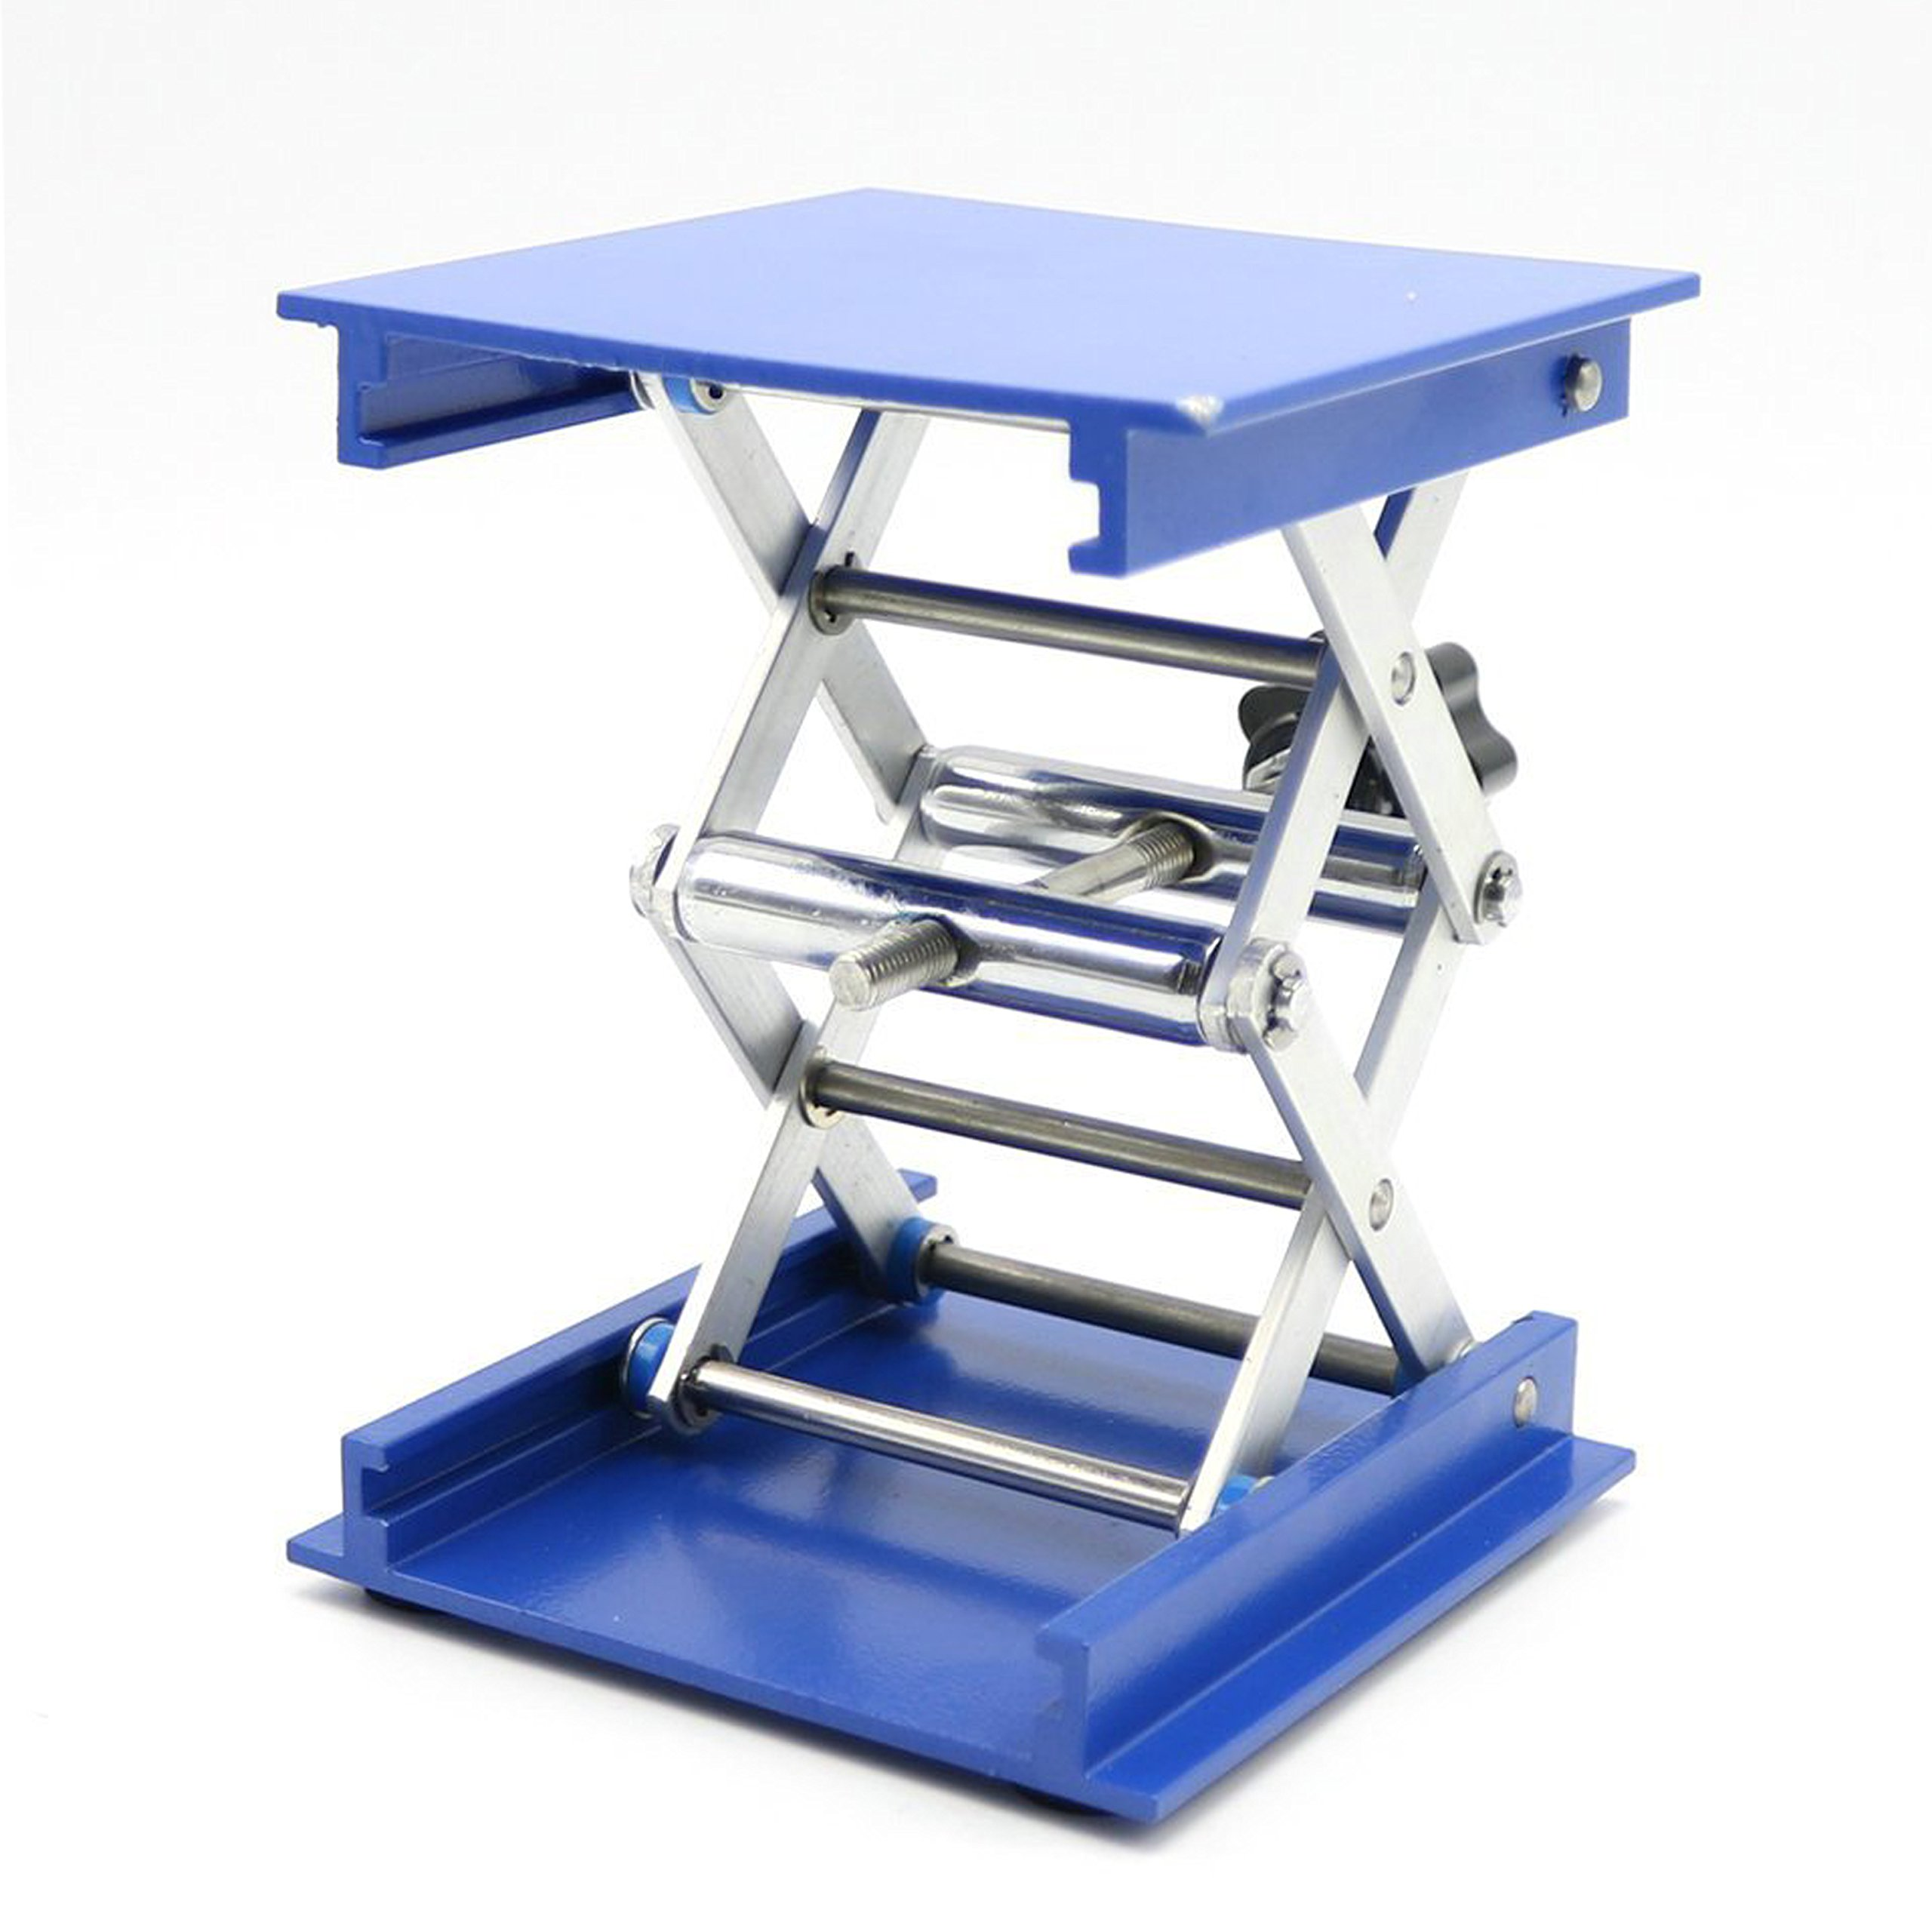 Cheap Diy Scissor Lift Table, find Diy Scissor Lift Table deals on